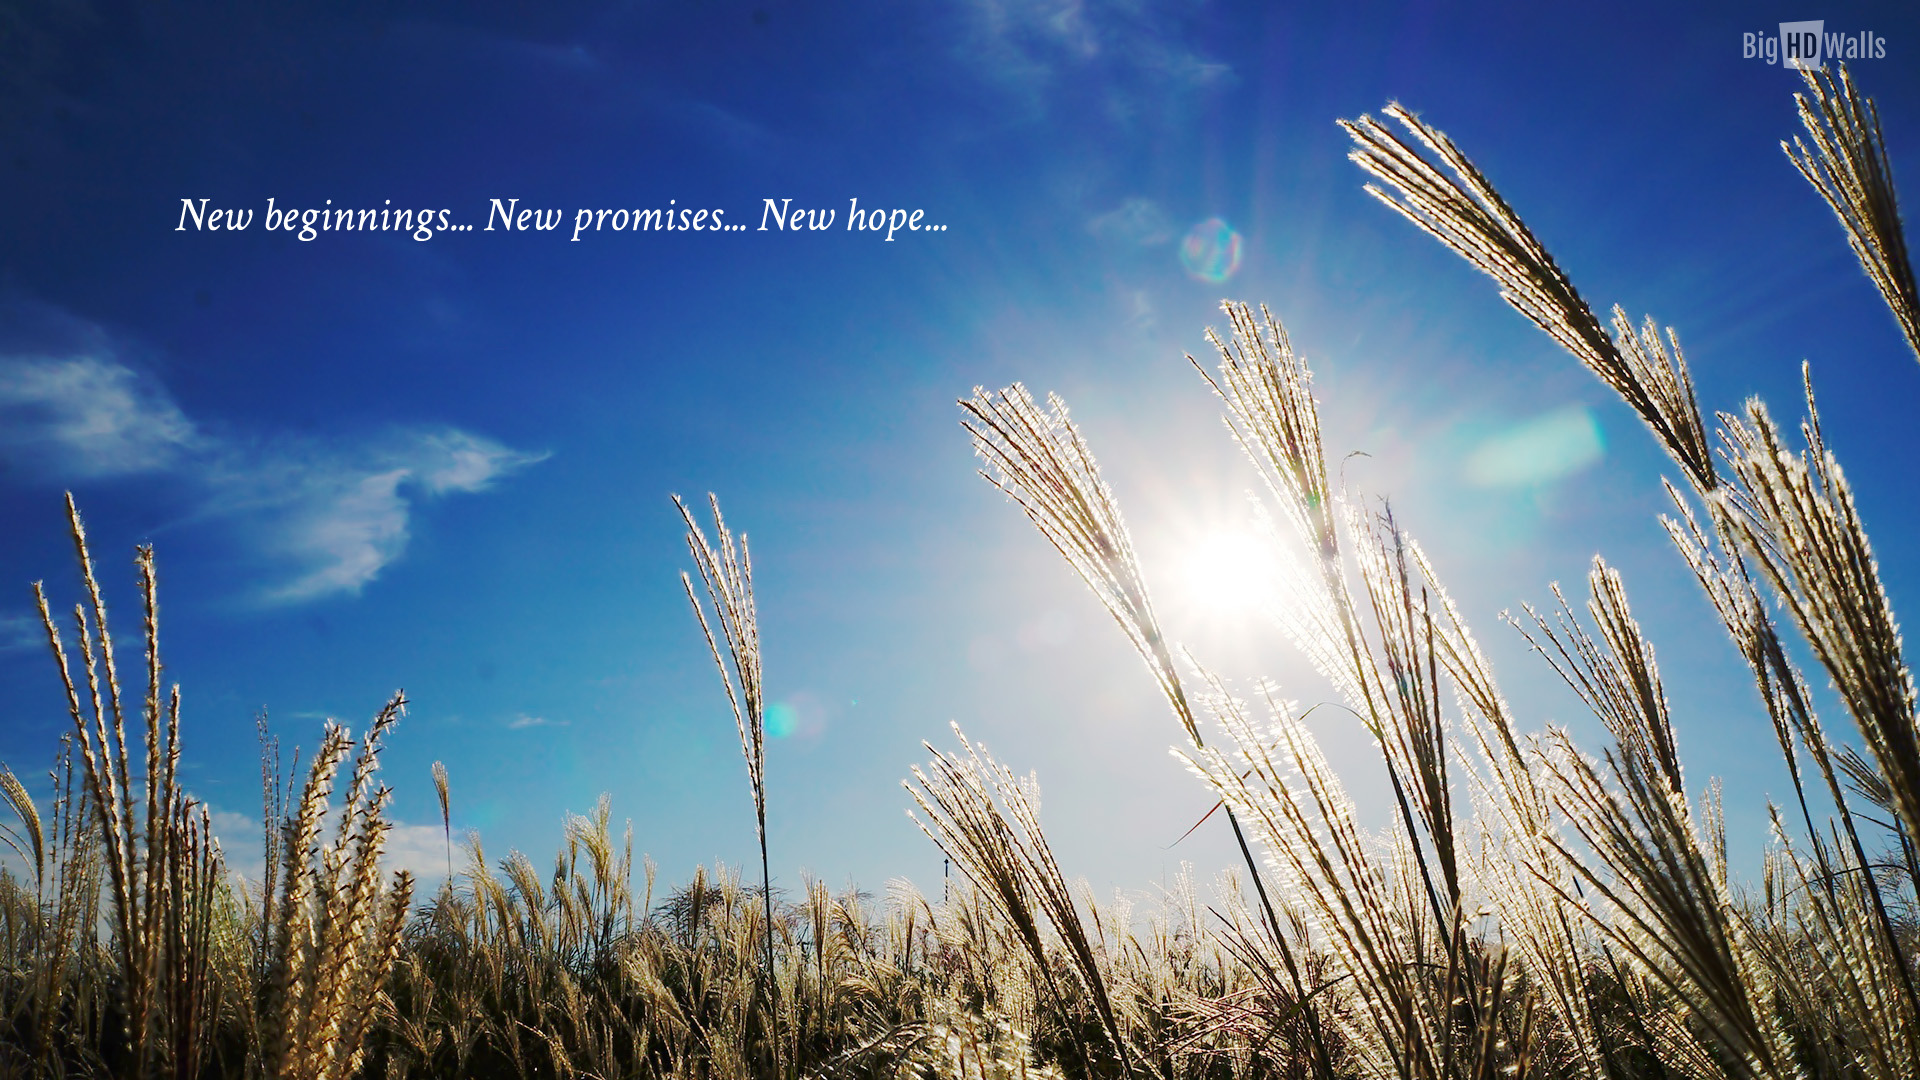 New Beginnings Wallpaper